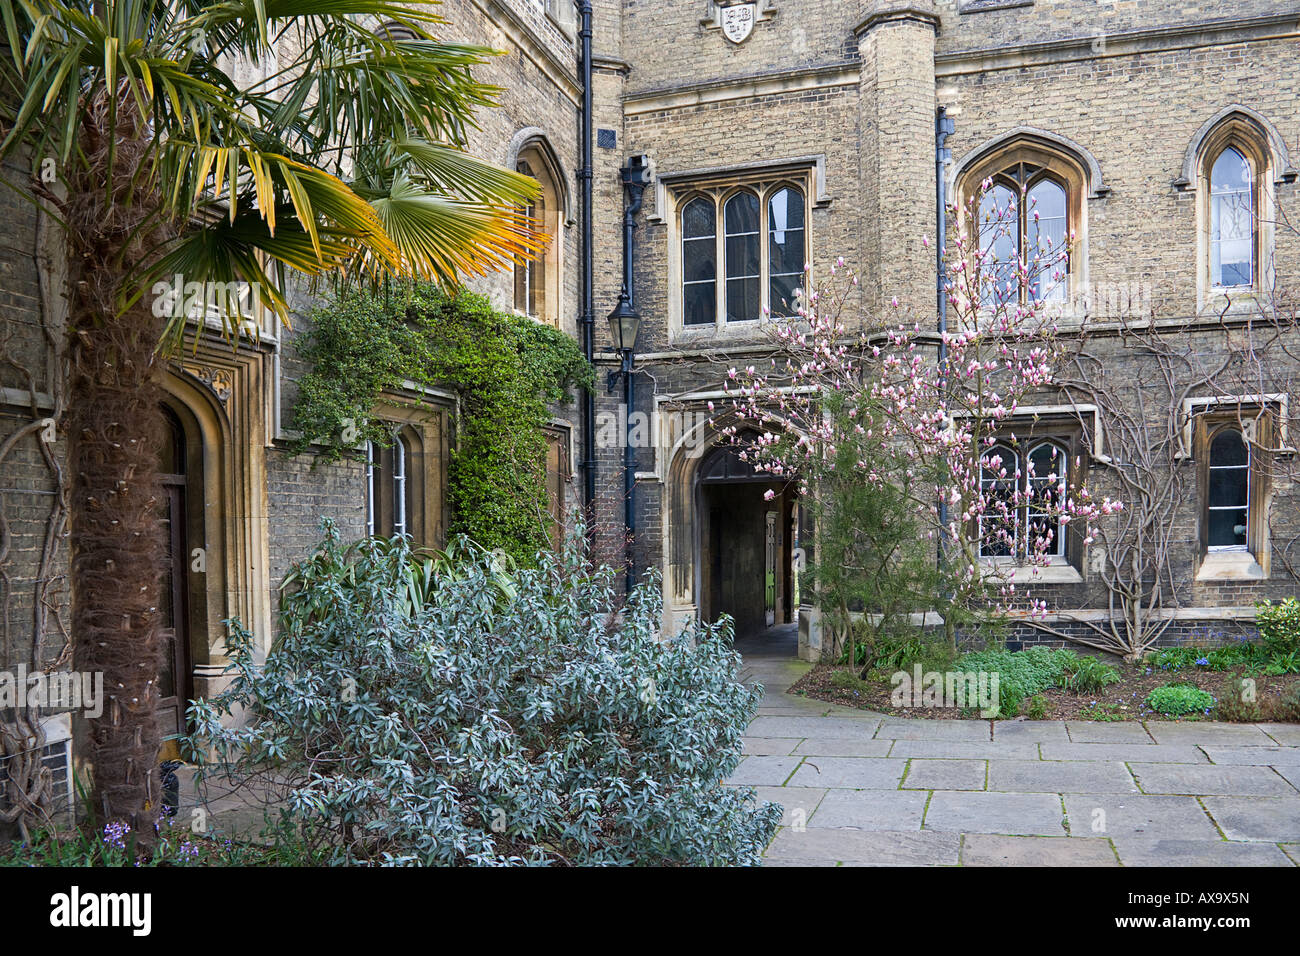 Peterhouse college. Cambridge. Cambridgeshire. East Anglia. UK. - Stock Image